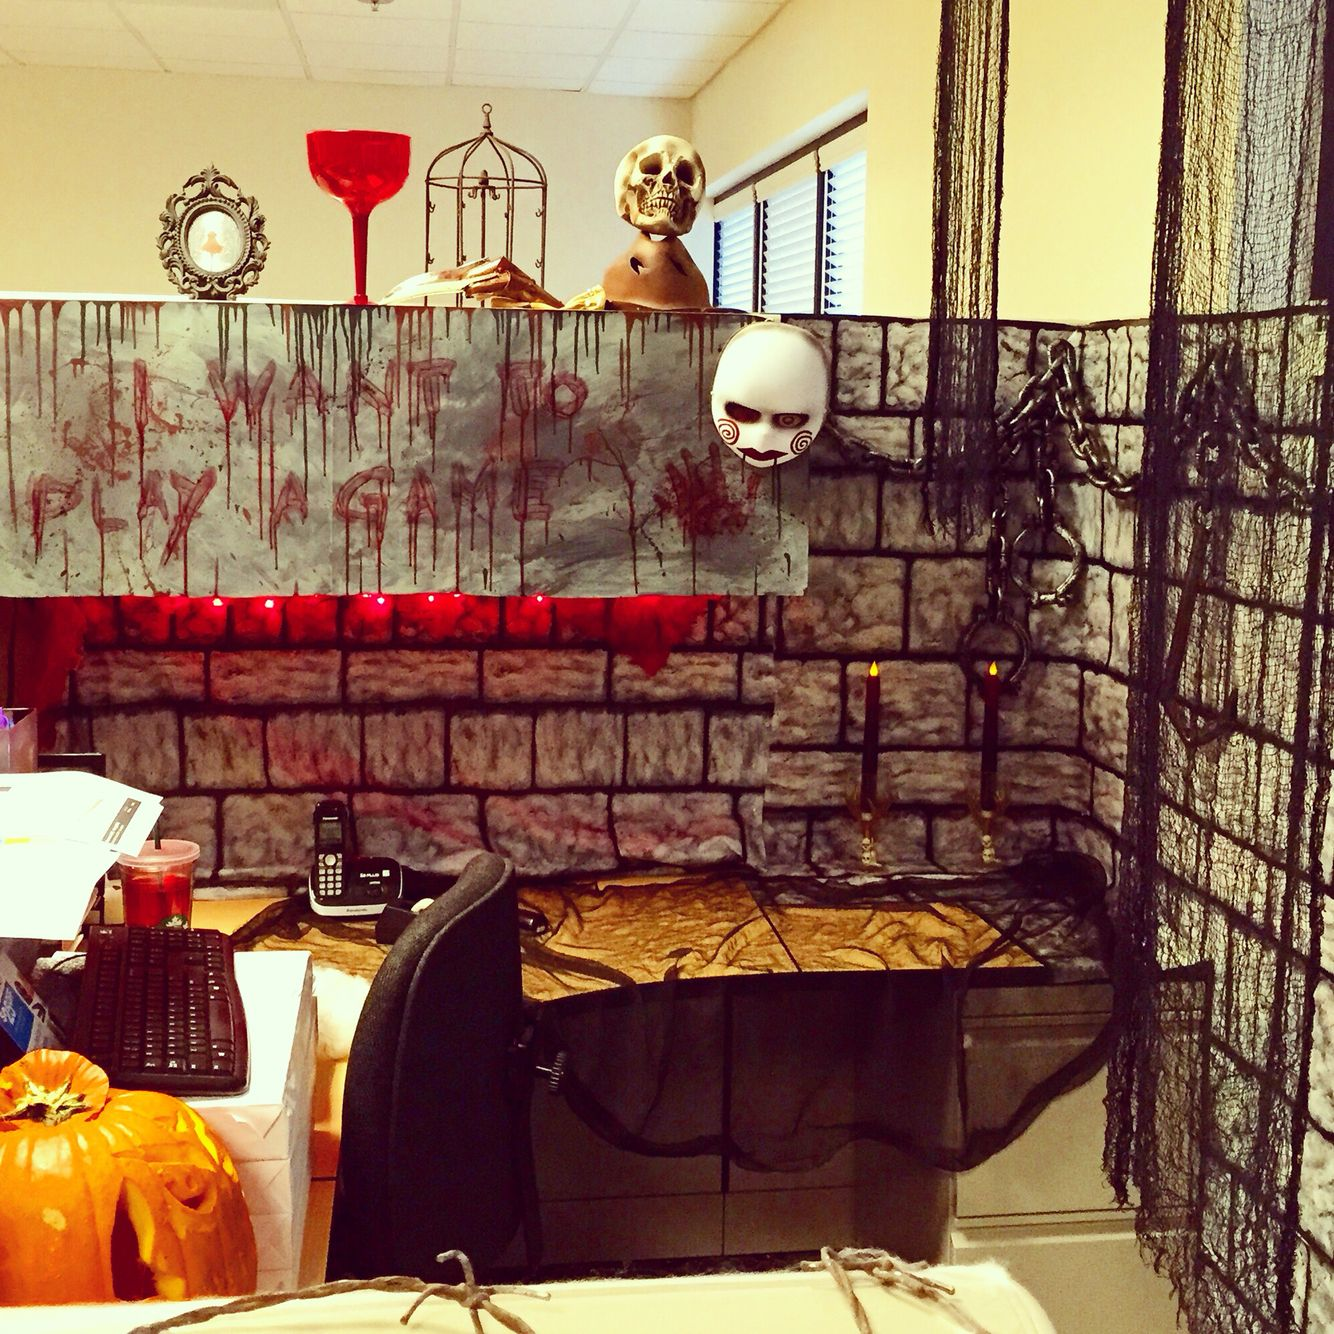 amusing halloween office decoration theme ideas | My Halloween decorations in my Cubicle at work ...